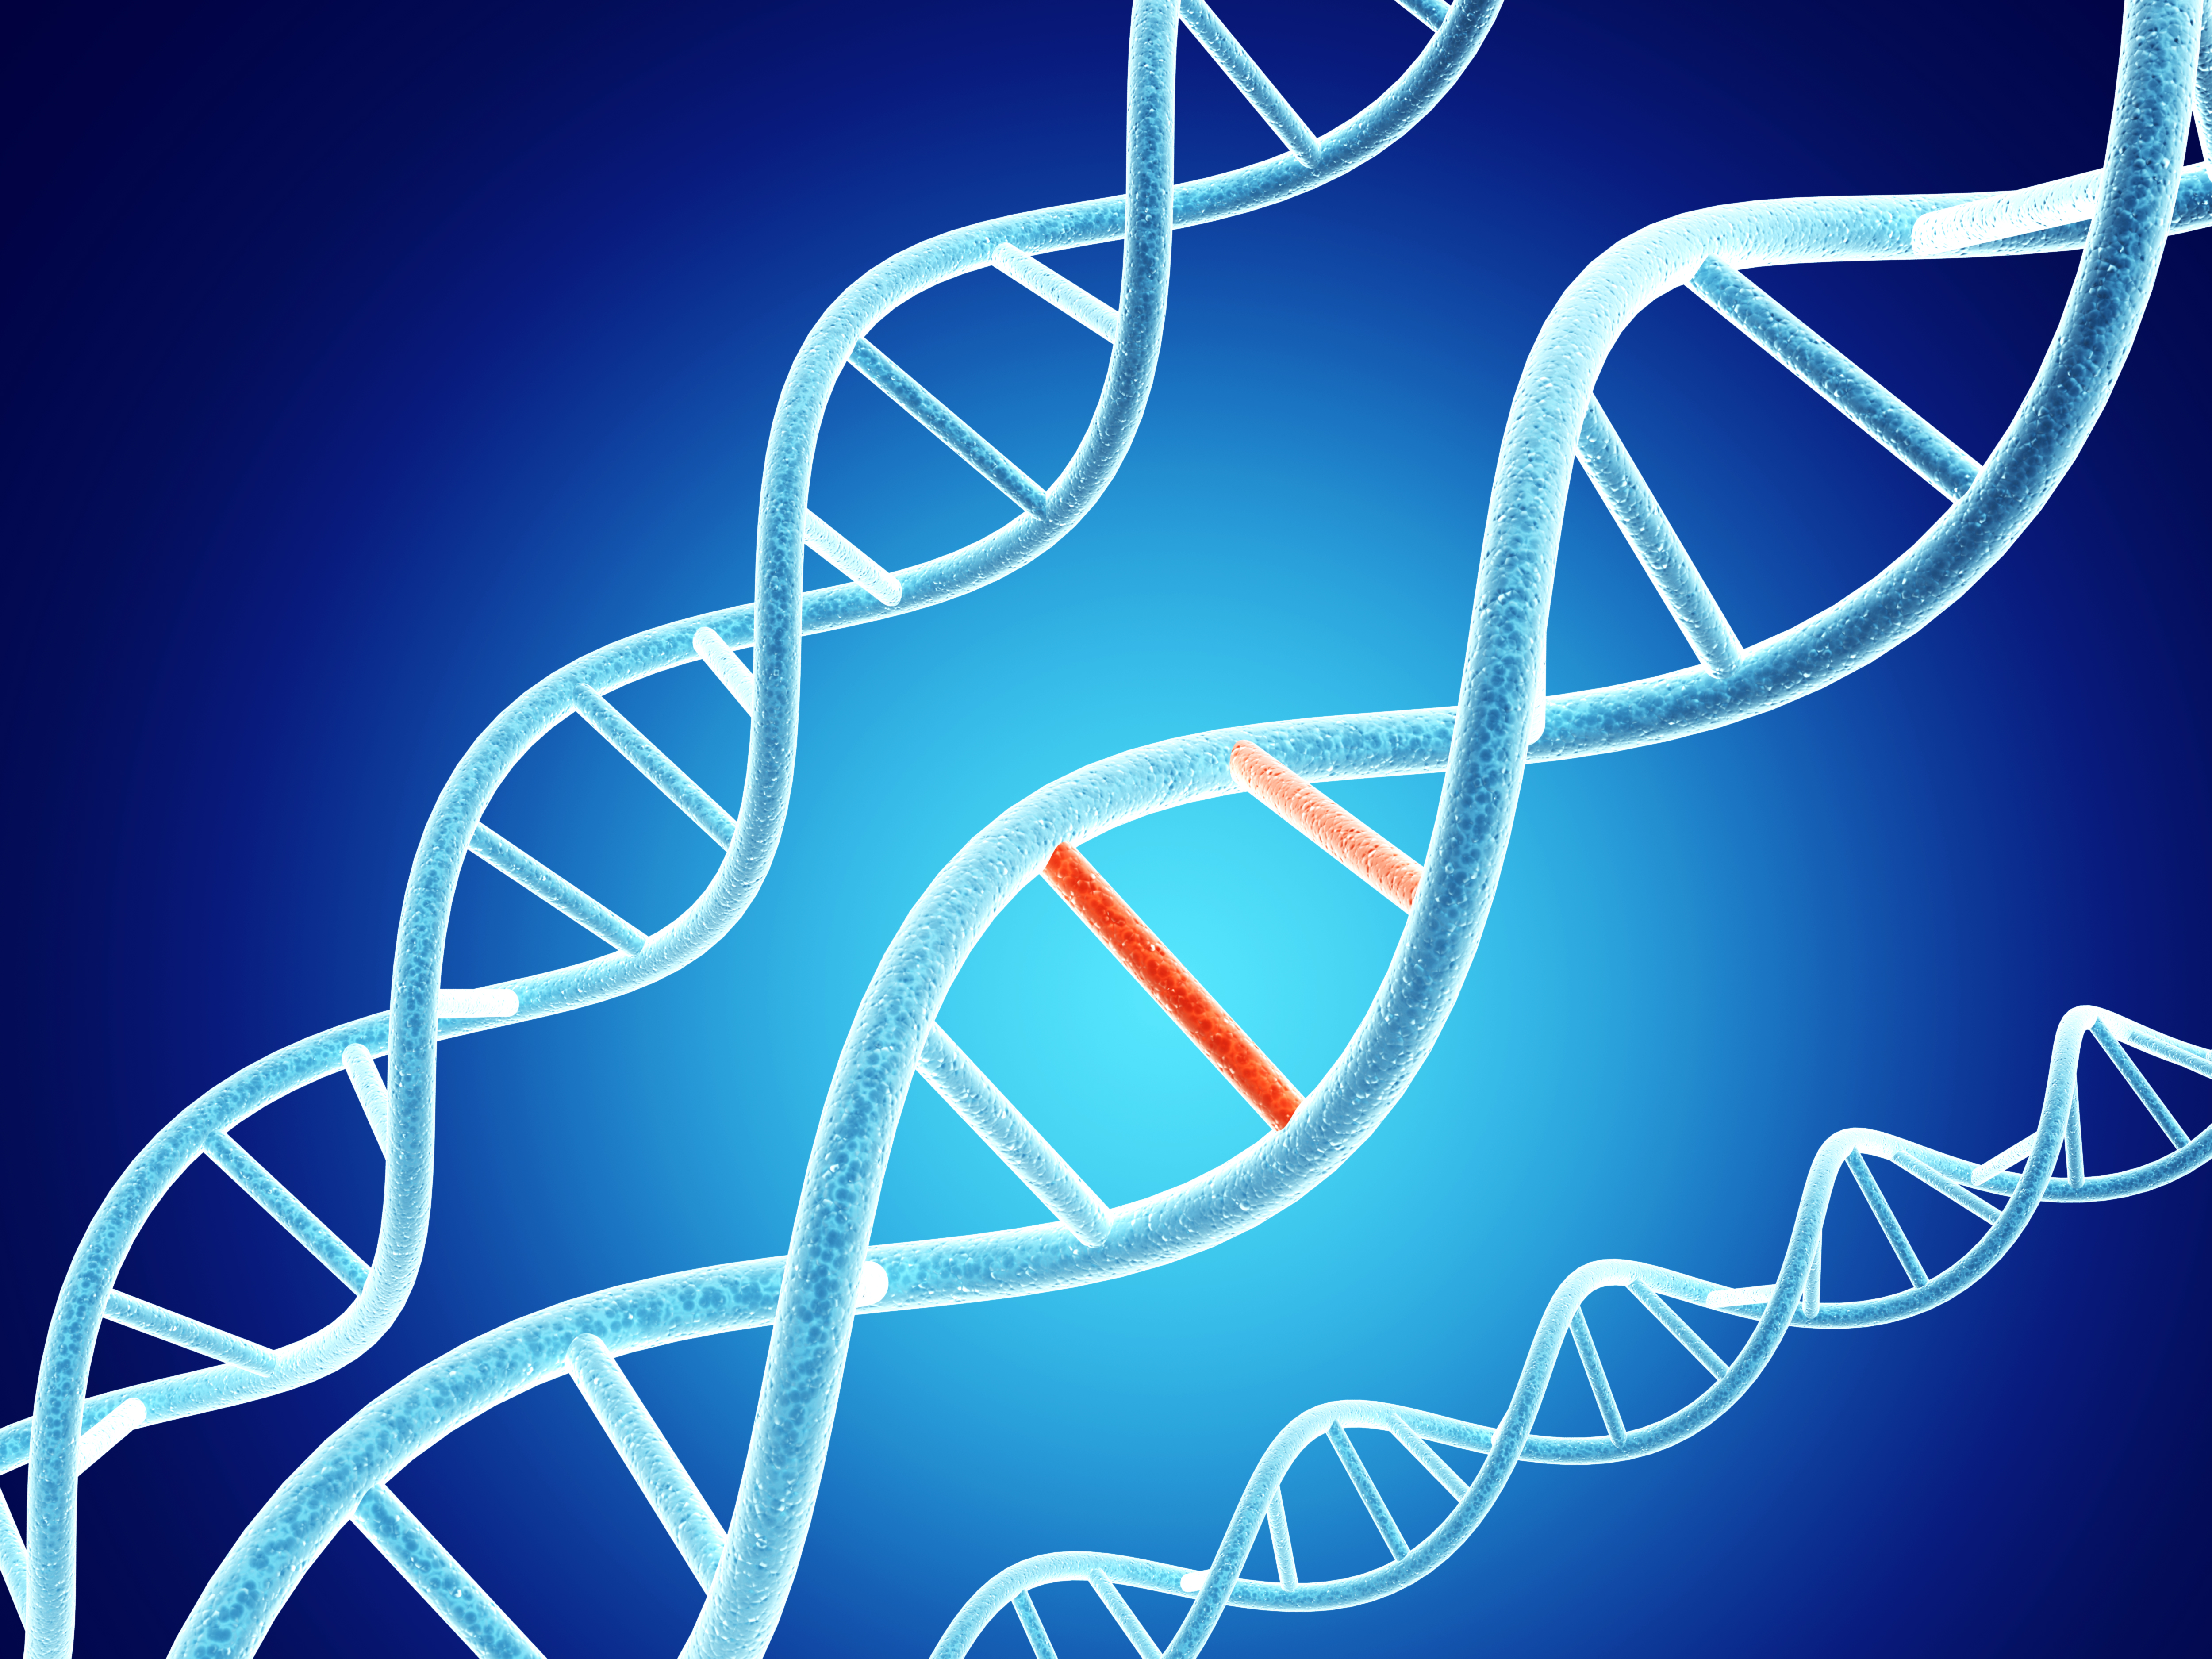 DNA structure with problem element